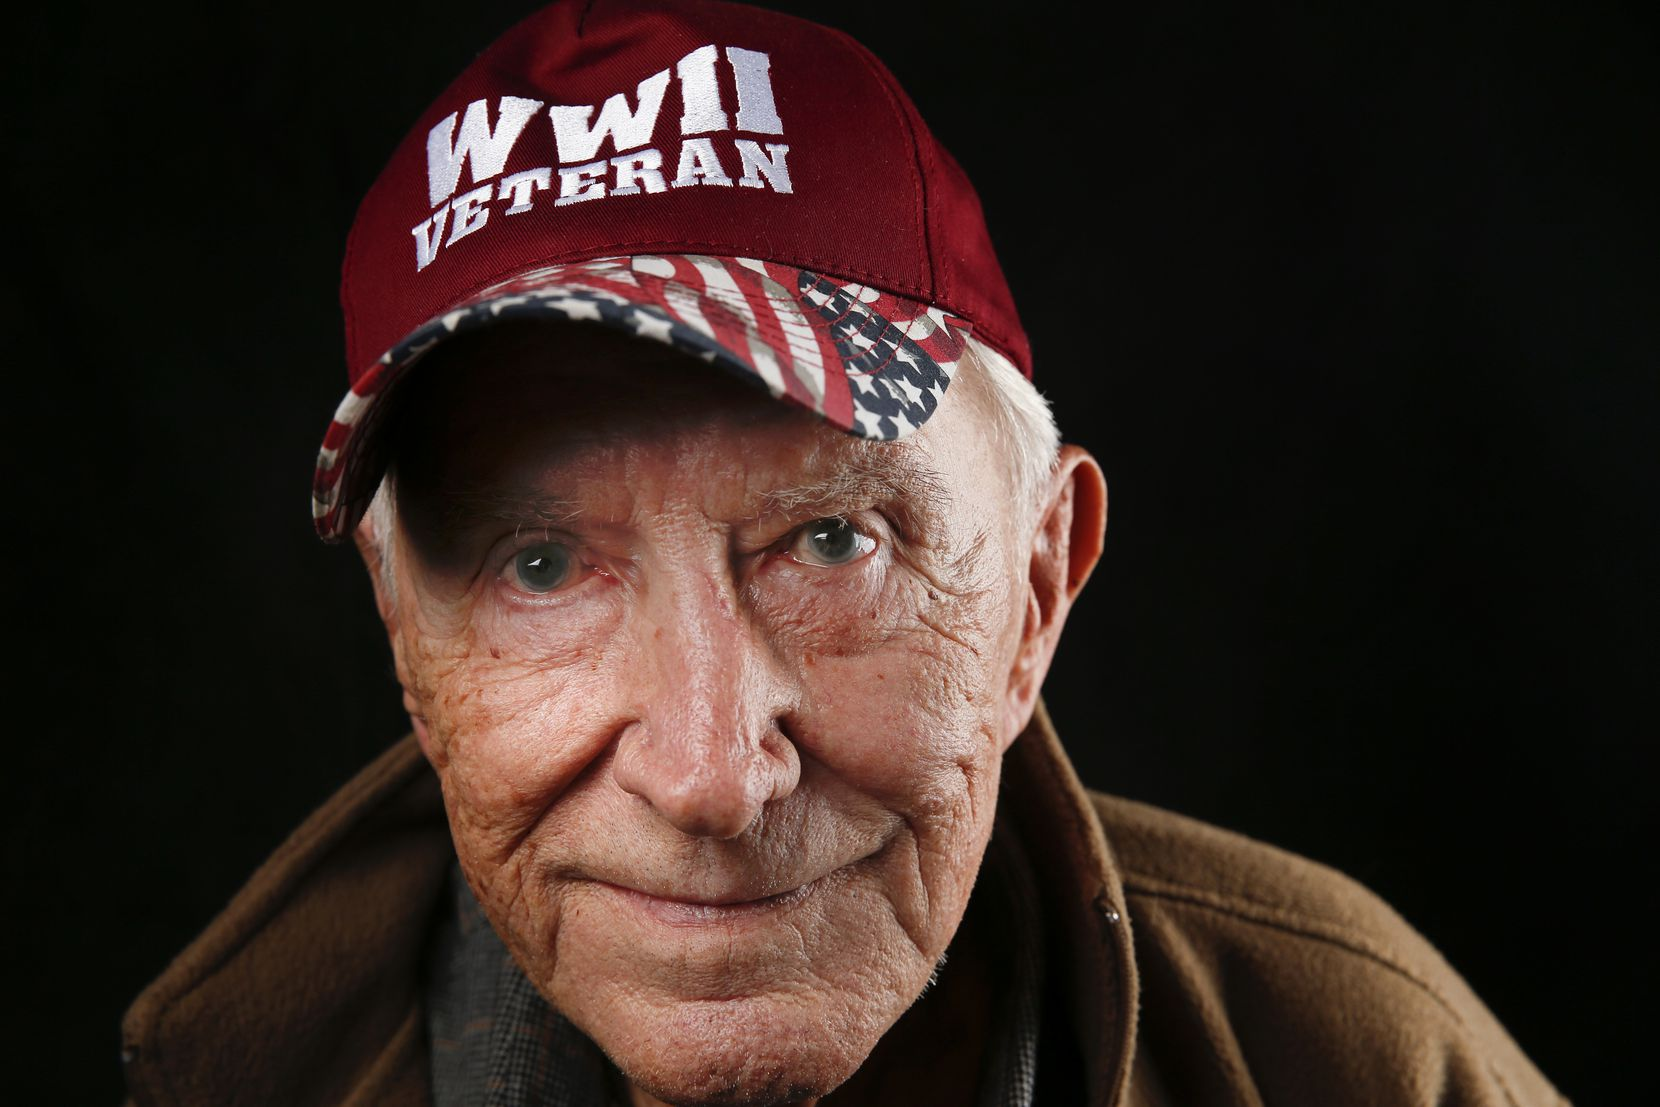 Barney Baker, 94, of Arlington, Texas, a private who served as a World War II top gunner on a tank destroyer, is photographed during the Wings Over Dallas Airshow on Saturday, Oct. 26, 2019 in Dallas.